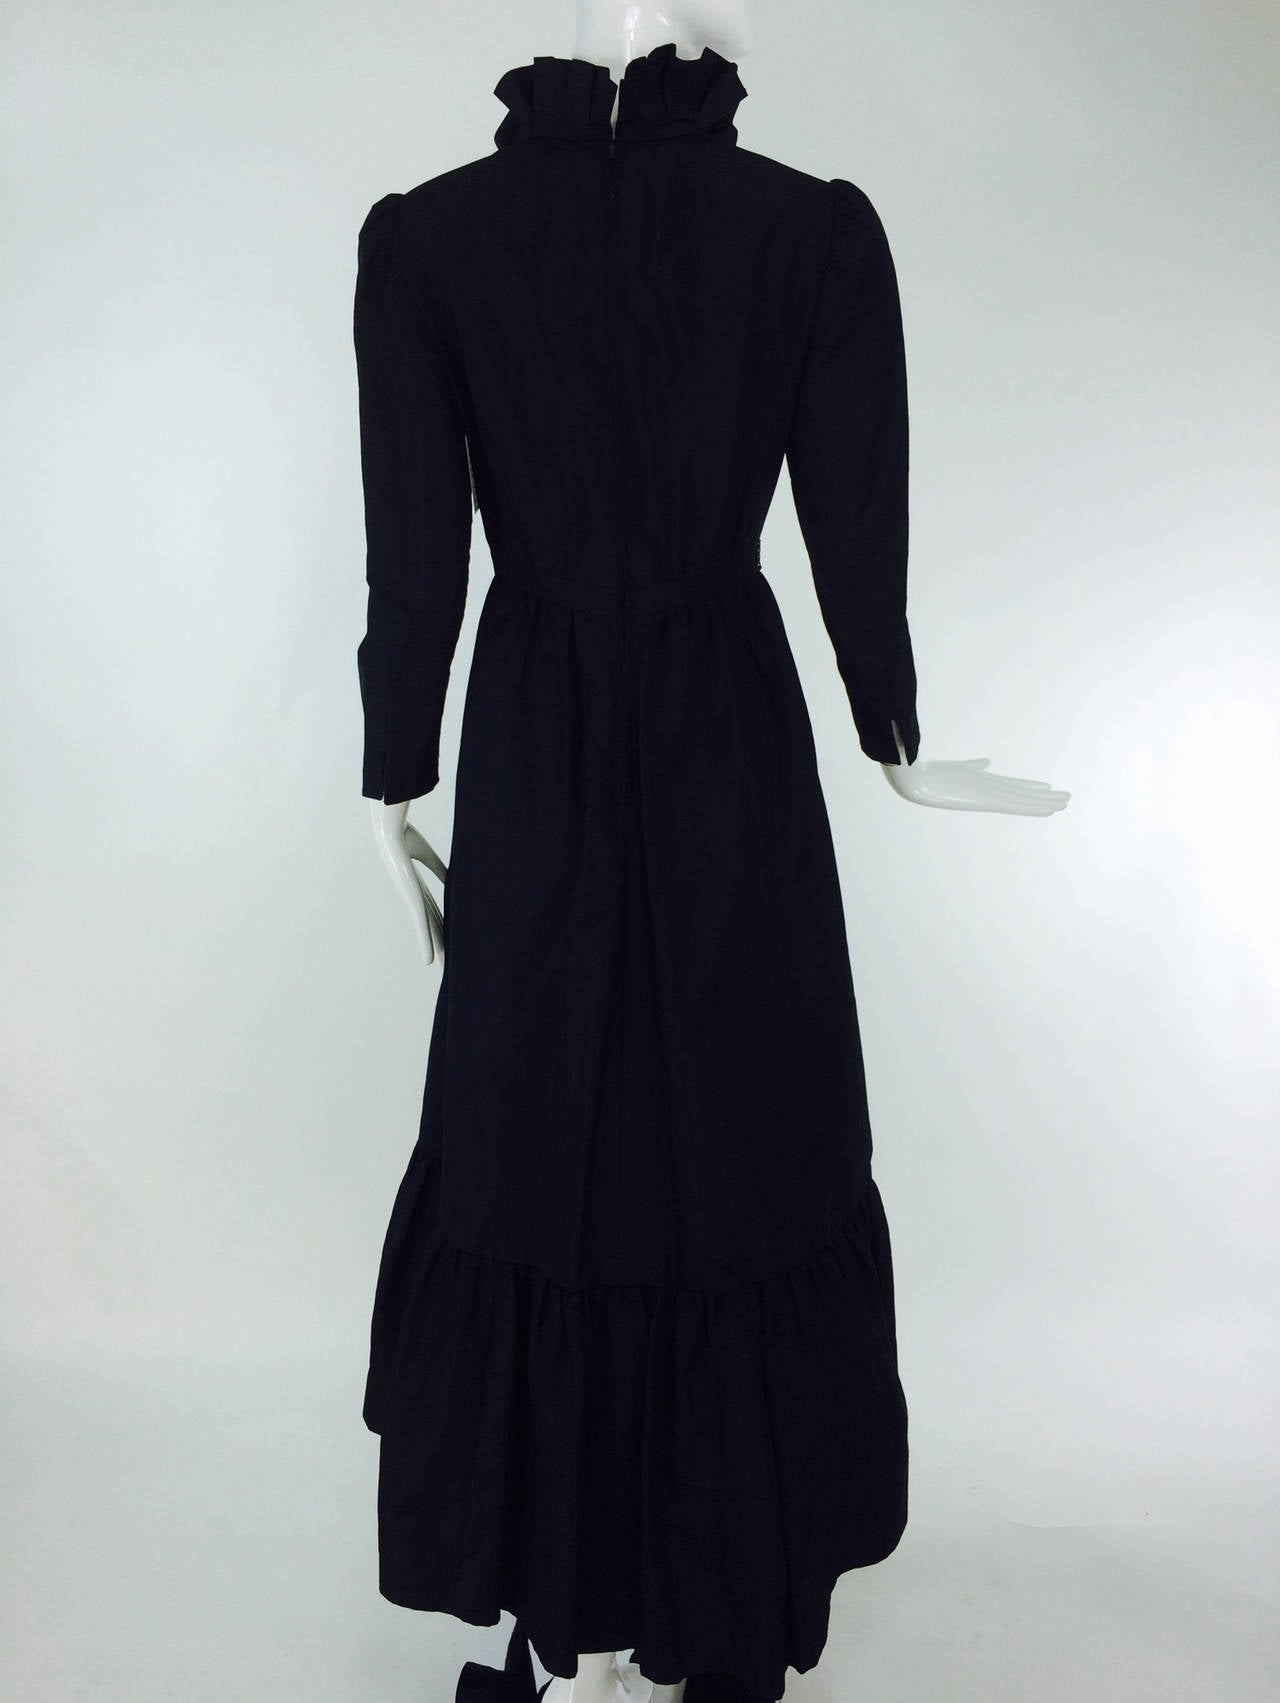 Shannon Rodgers for Jerry Silverman black Victorian style gown 1960s 5